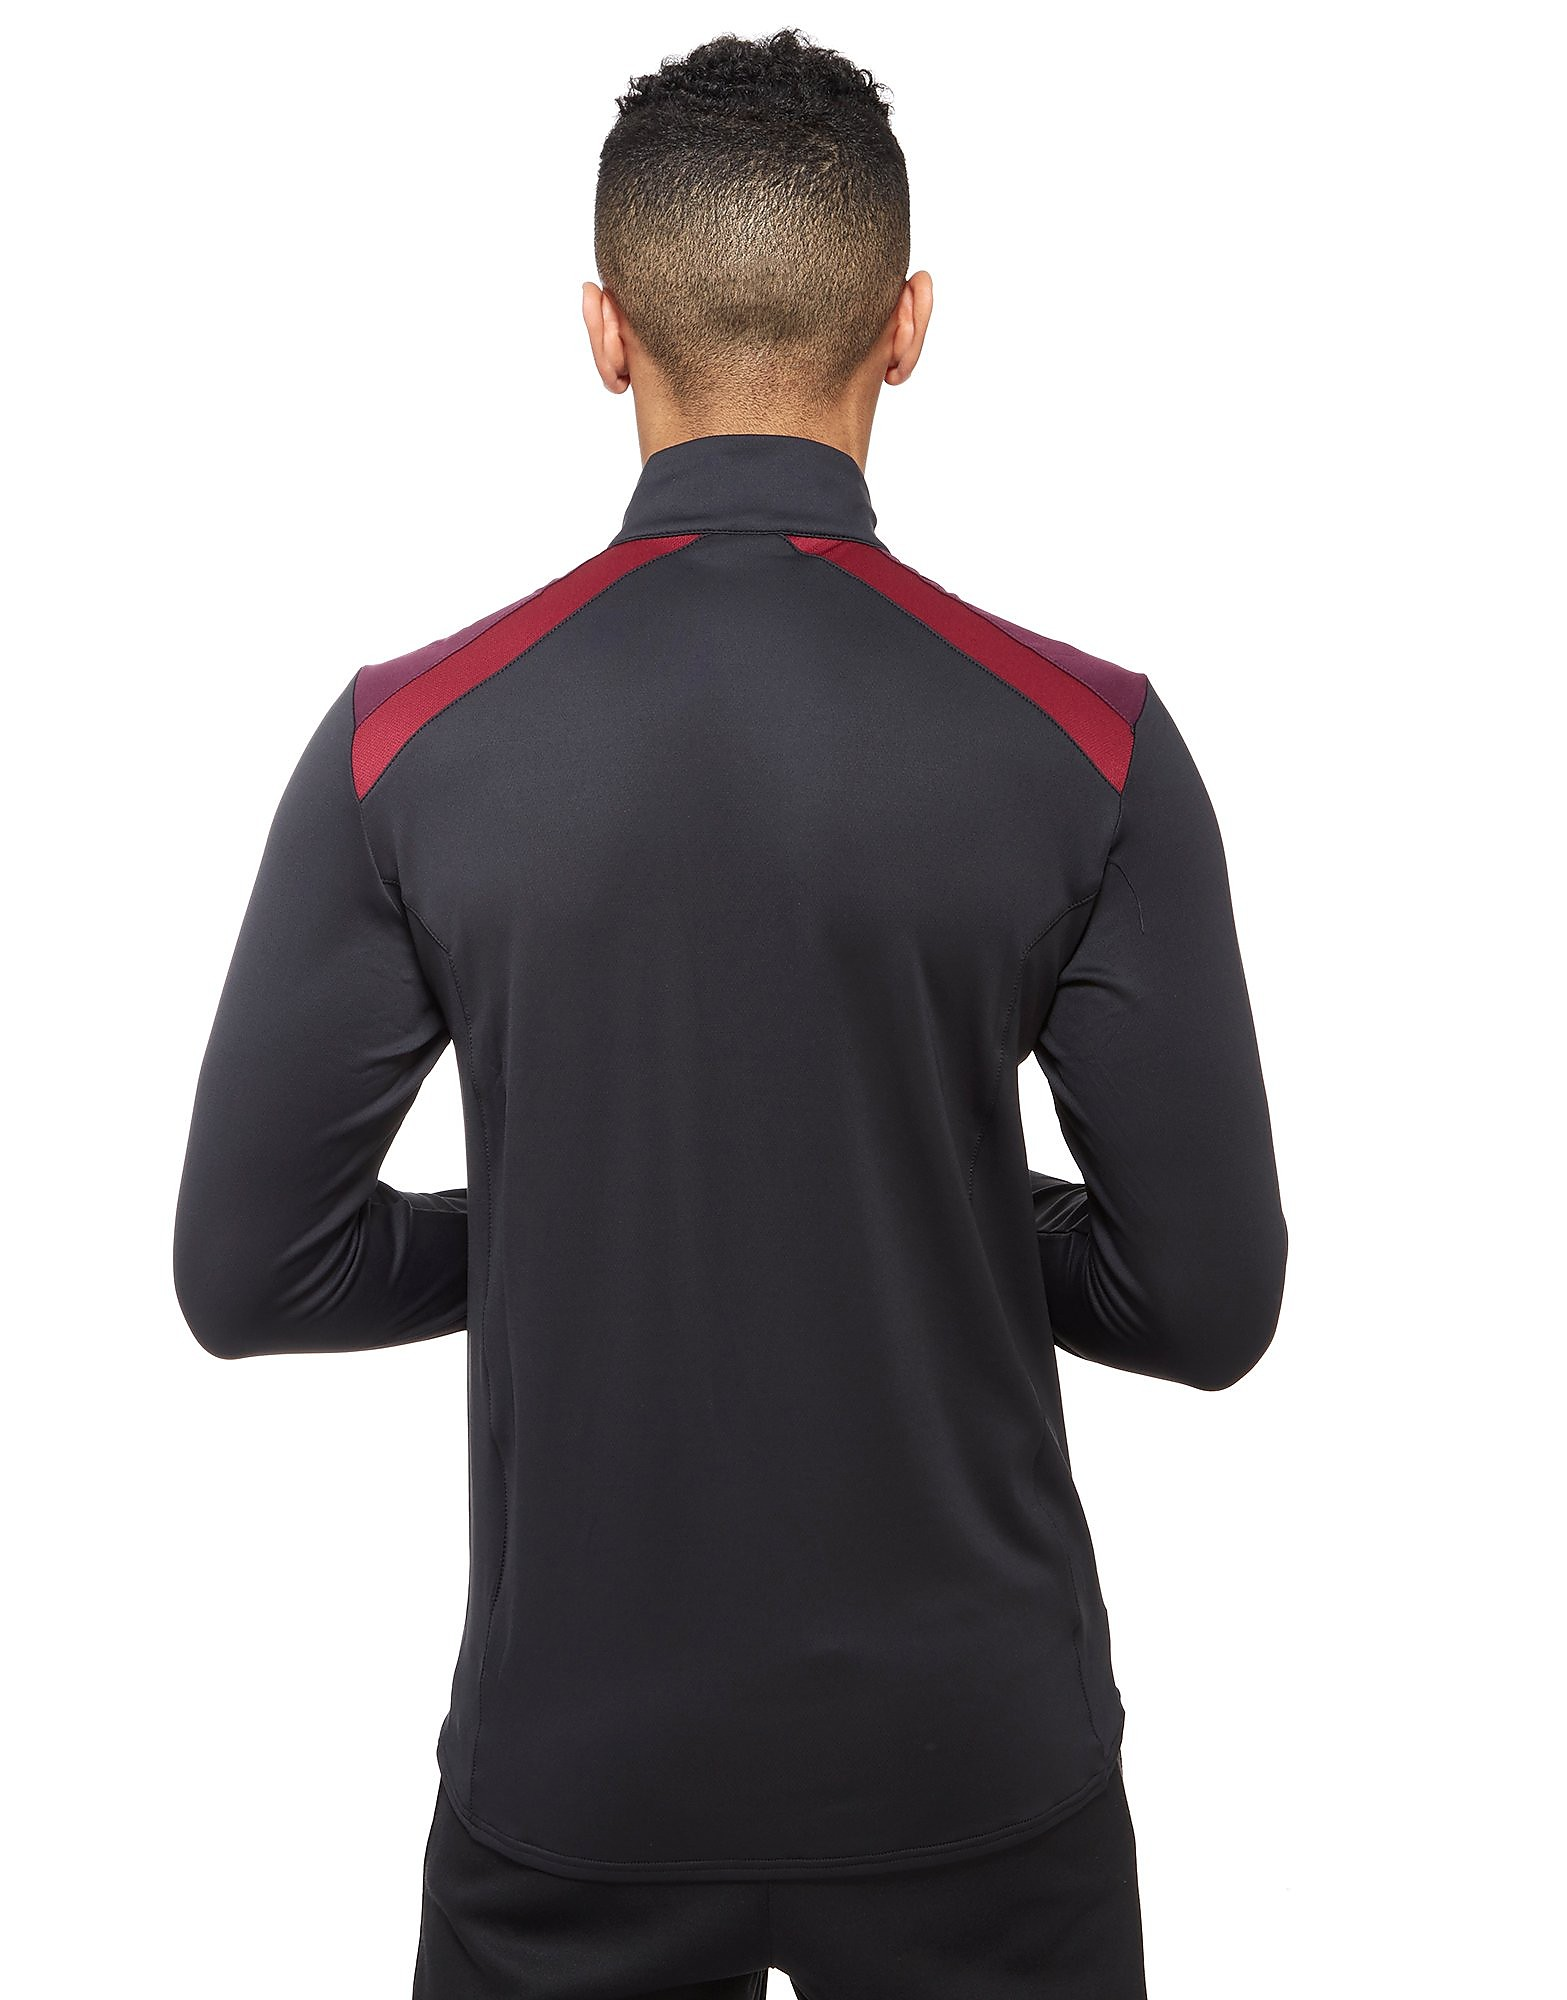 Umbro West Ham United Half Zip Training Top